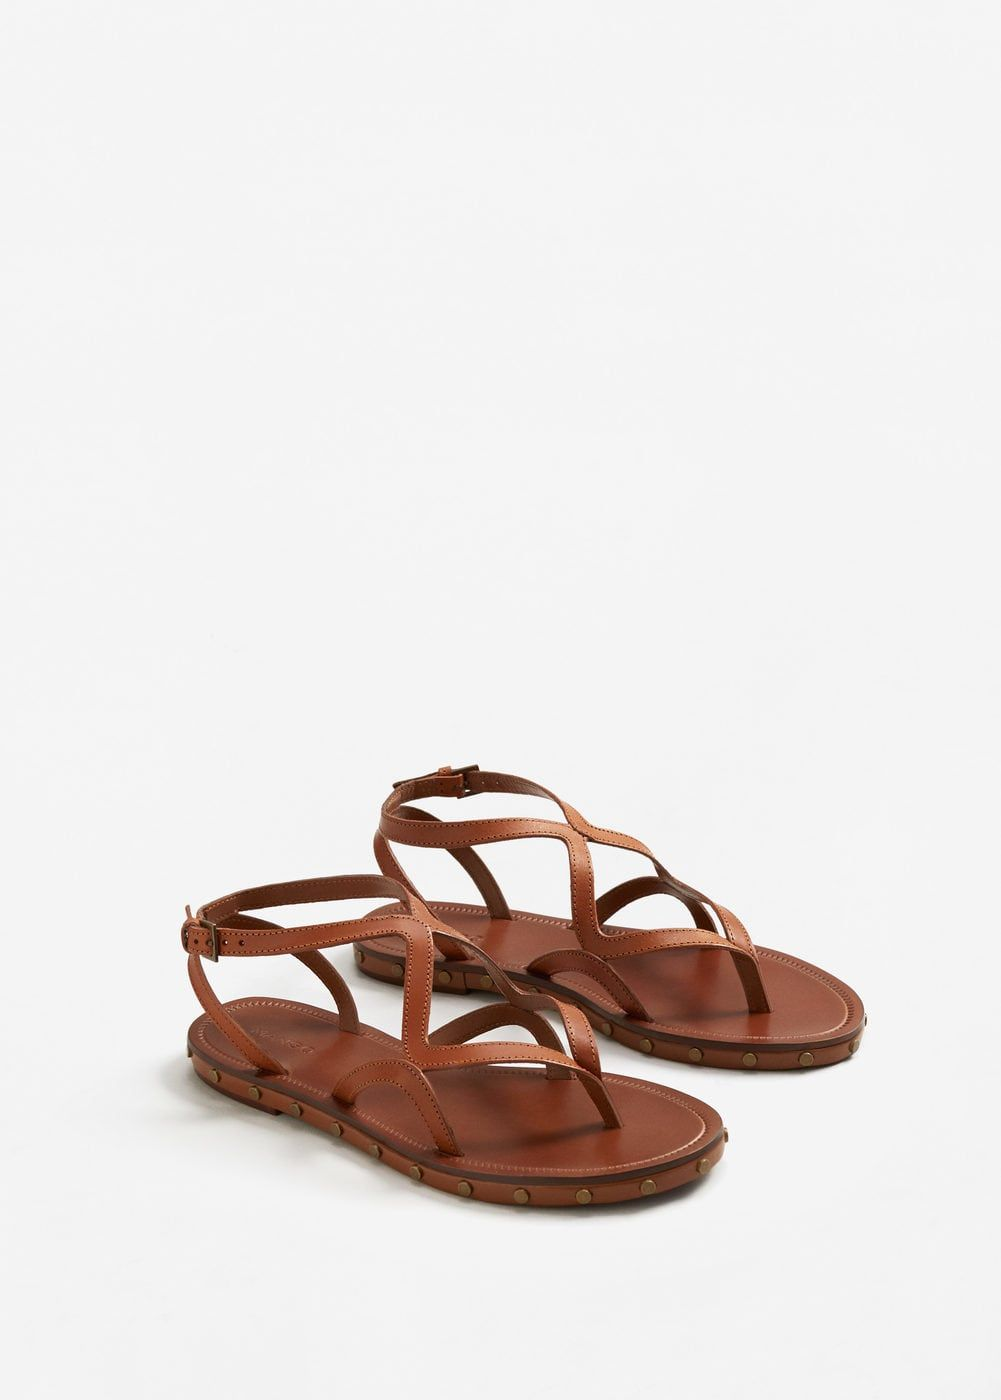 df6fdfd81 Leather straps sandals - Women | Shoes...because duh. | Studded ...